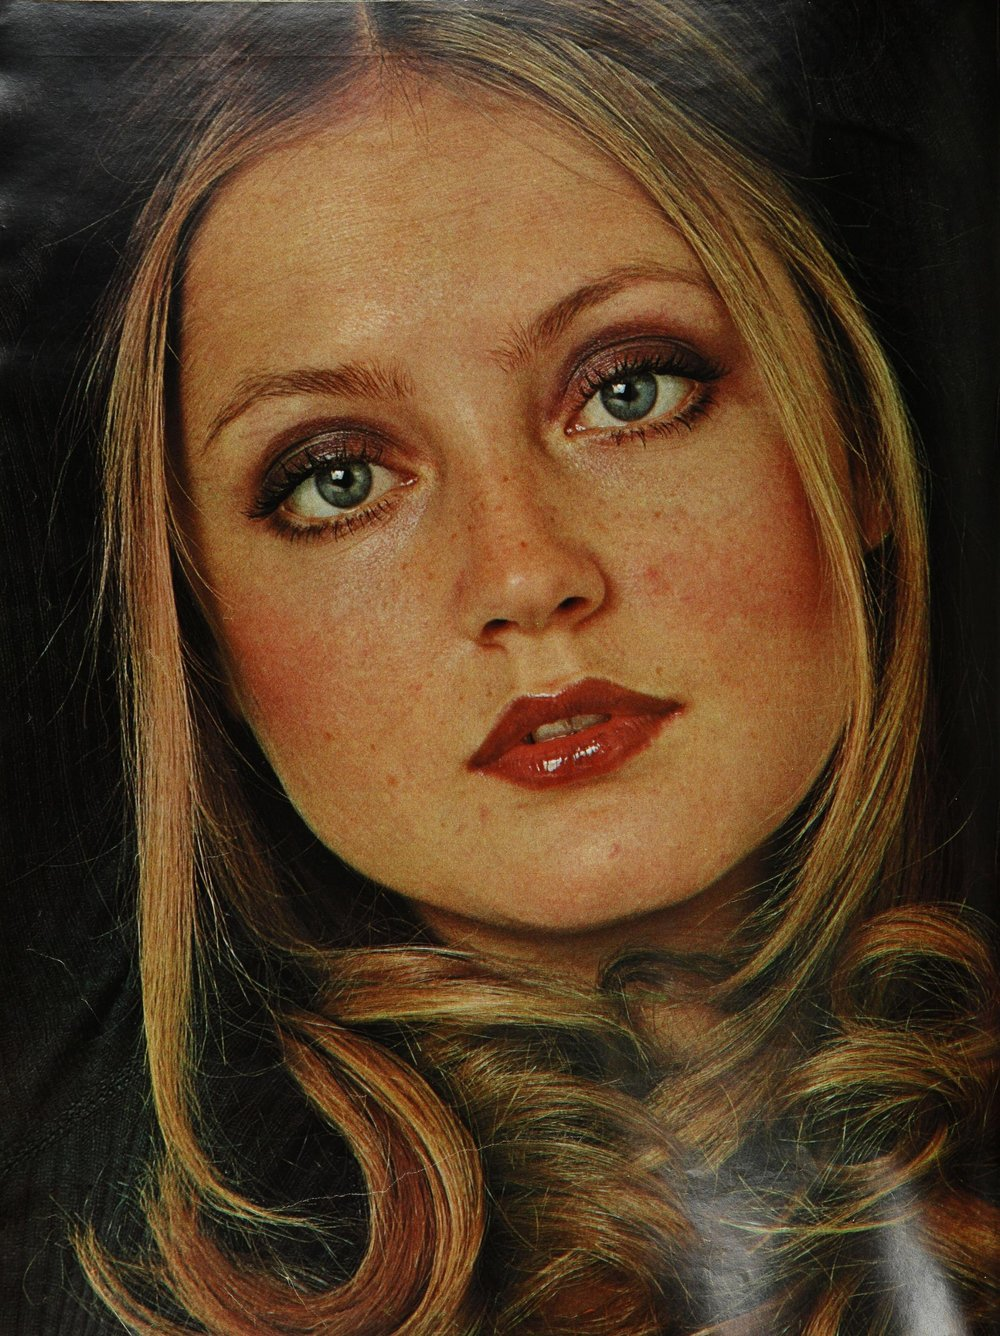 Ingrid photographed by Carmen Schiavone for Seventeen, July 1971.